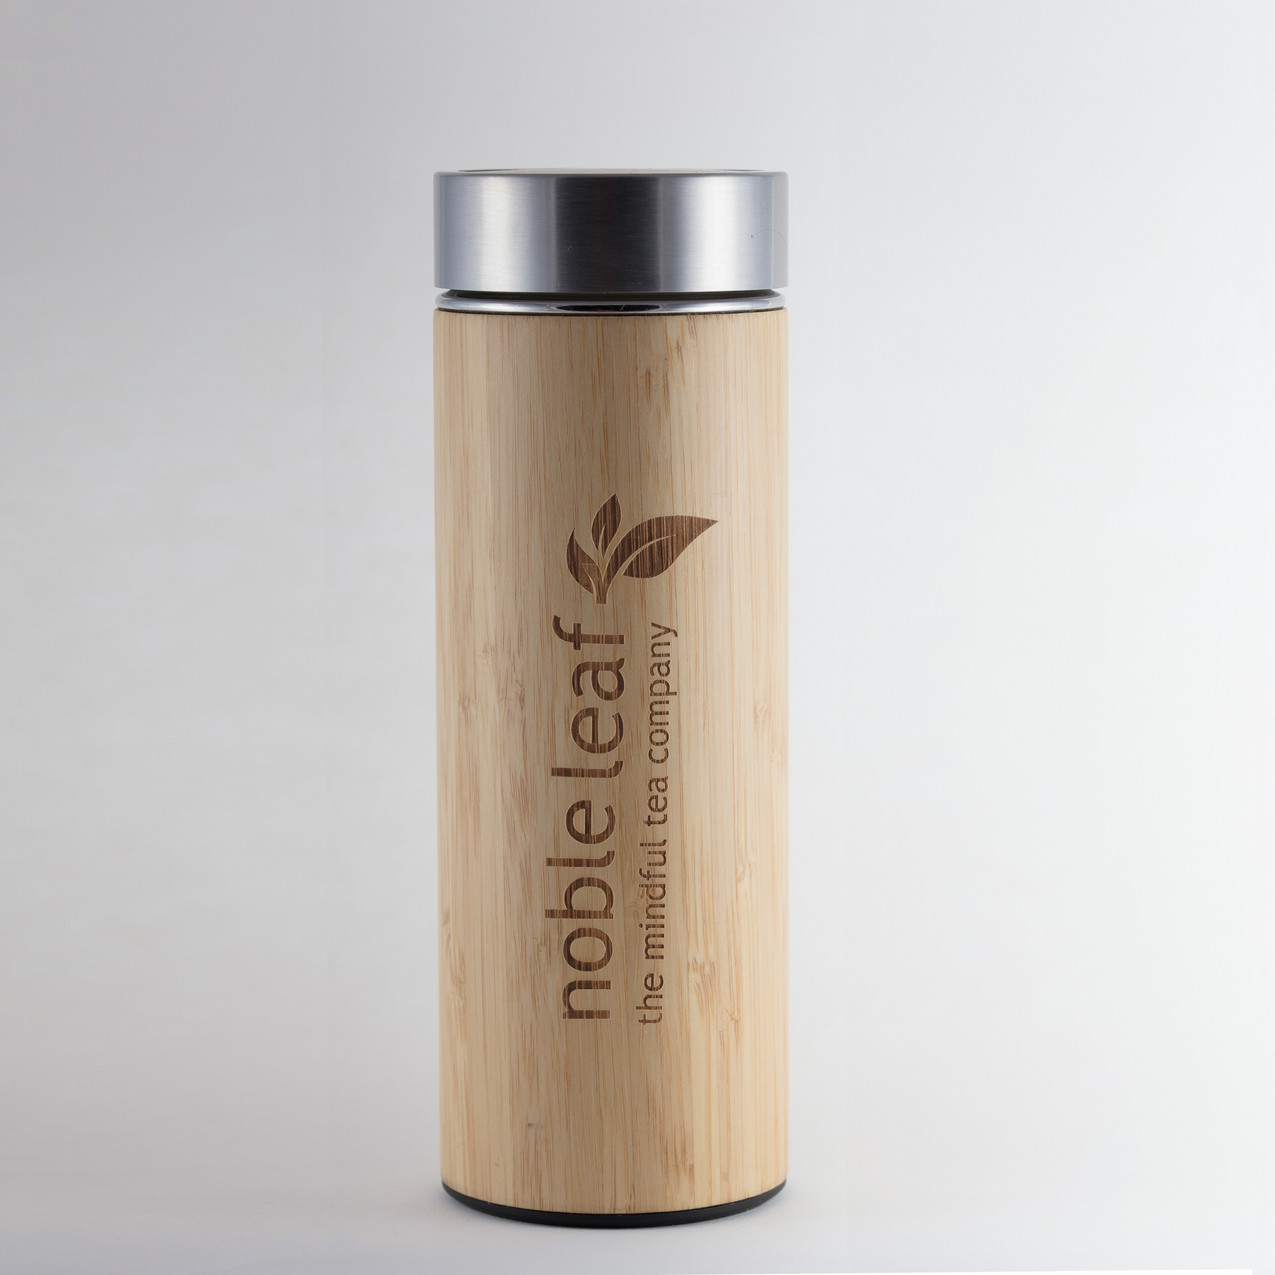 Bamboo Tea Infuser Flask